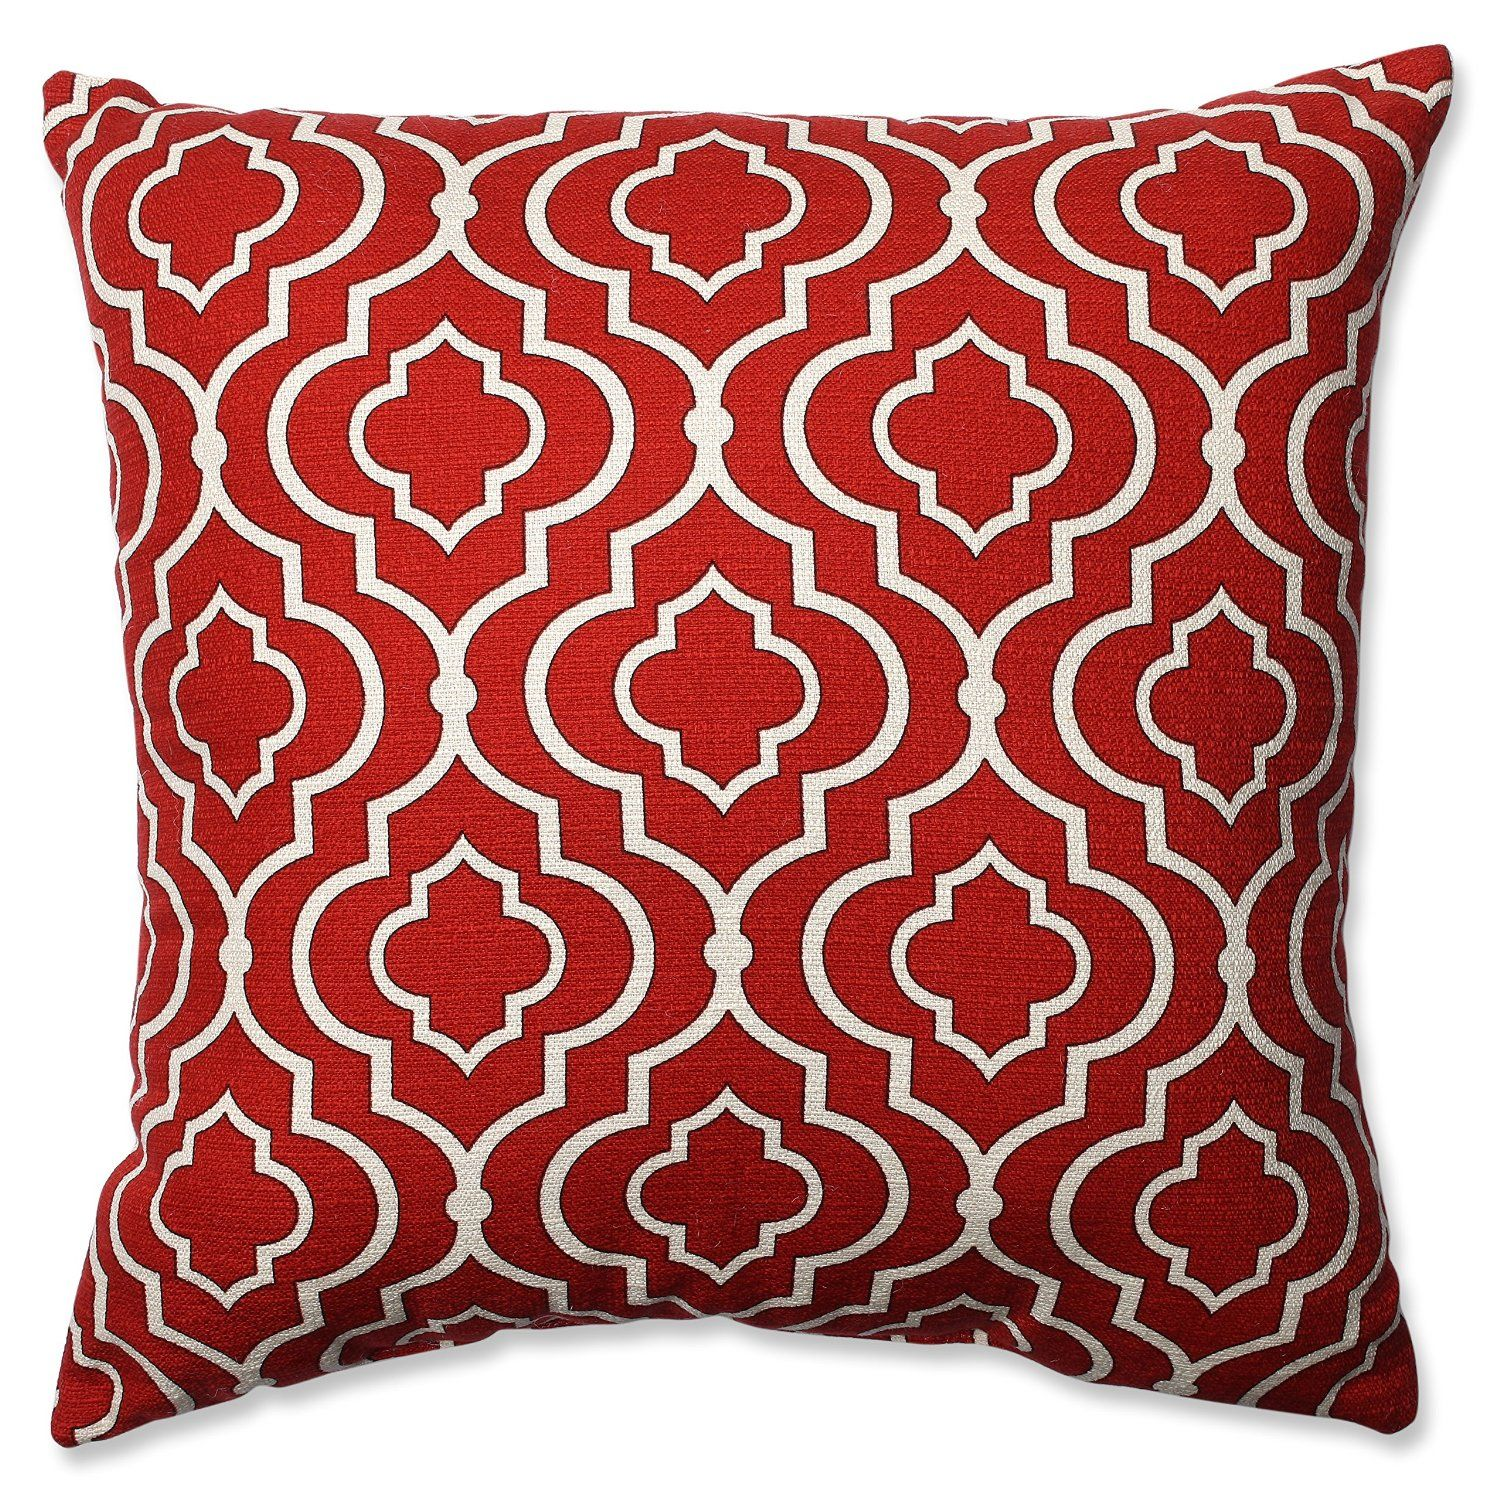 Red and White Pattern Throw Pillow | Neutral Master Bedroom Blog Post | FurnishingFrugally.com